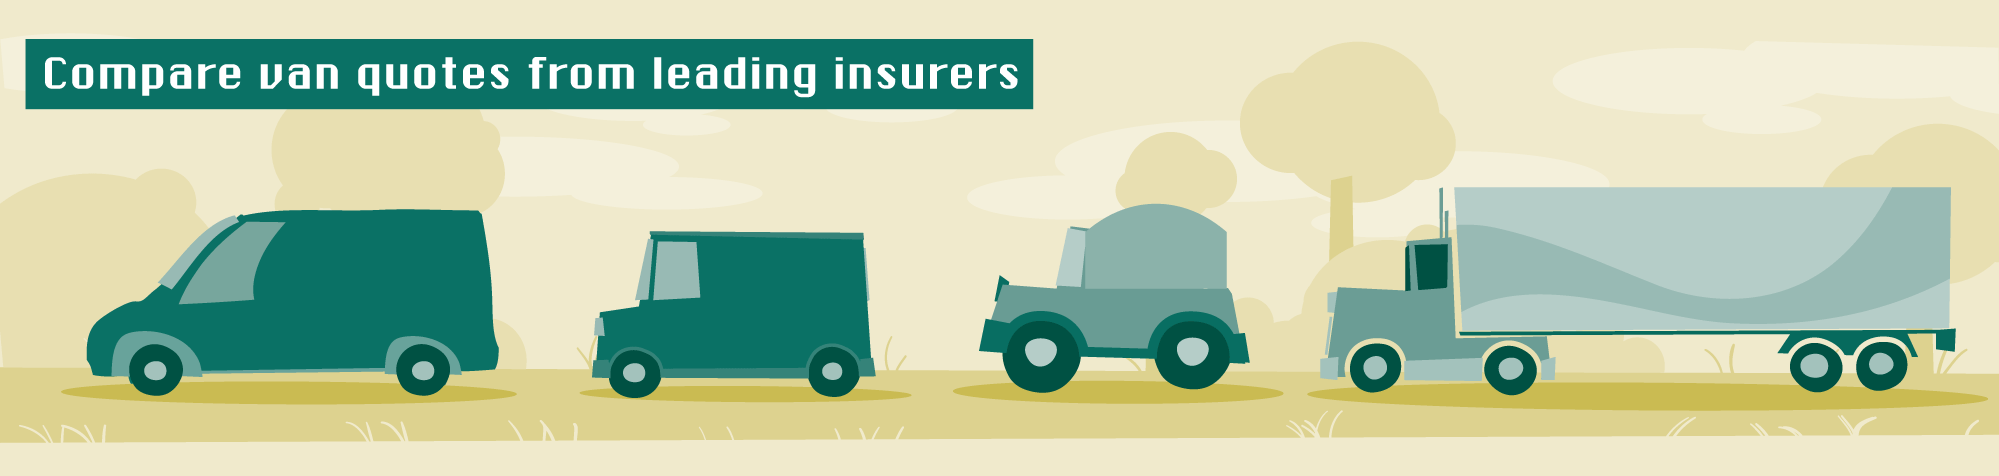 Compare van quotes from leading insurers